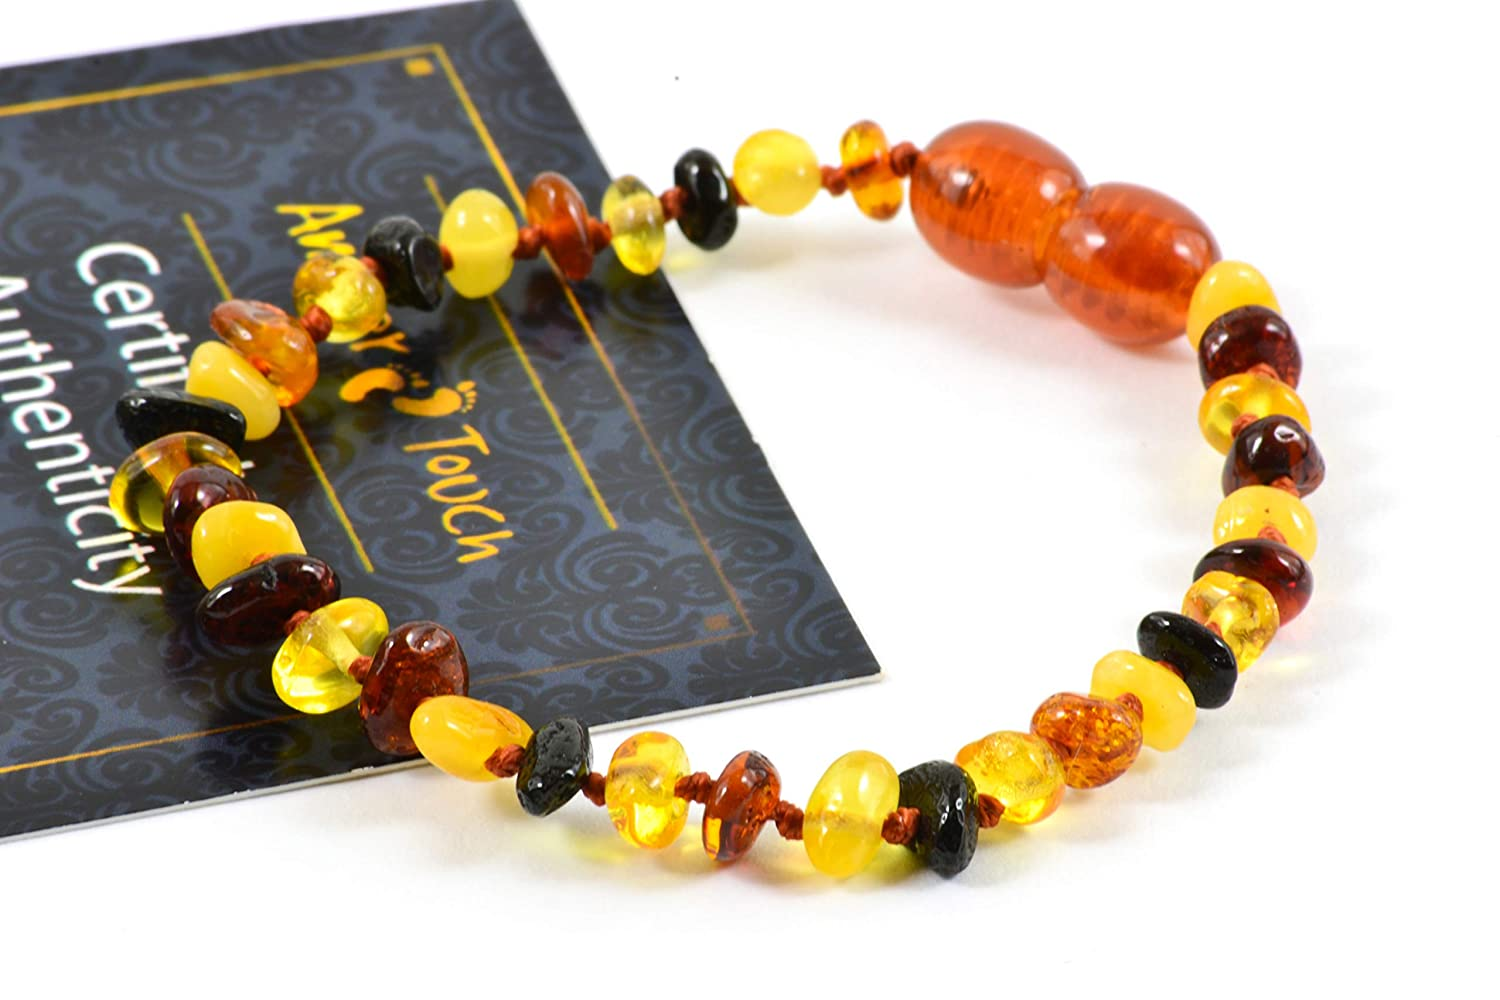 Certificated Natural Baltic Amber with the Highest Quality. Baltic Amber Teething Necklace for Babies Drooling /& Teething Pain Reduce Properties Unisex - Anti Flammatory